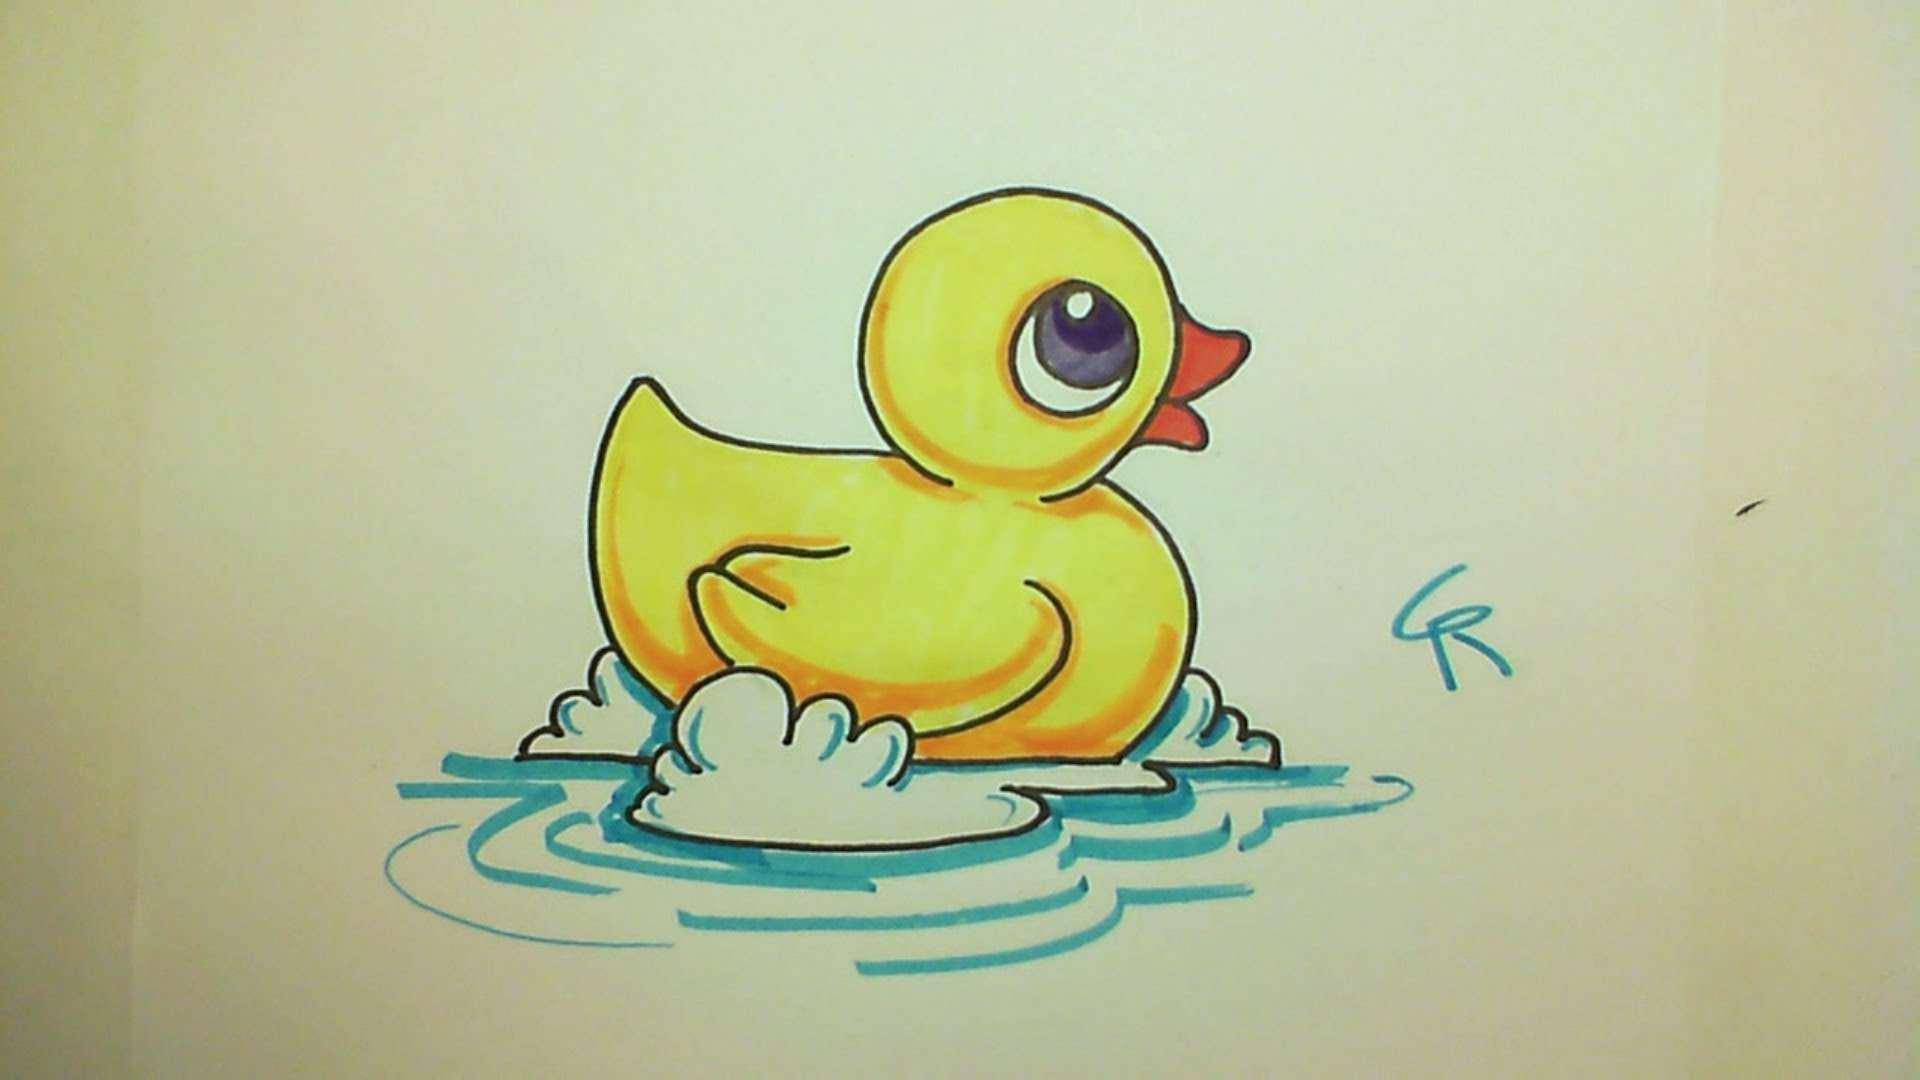 1920x1080 Learn How To Draw A Cute Rubber Ducky